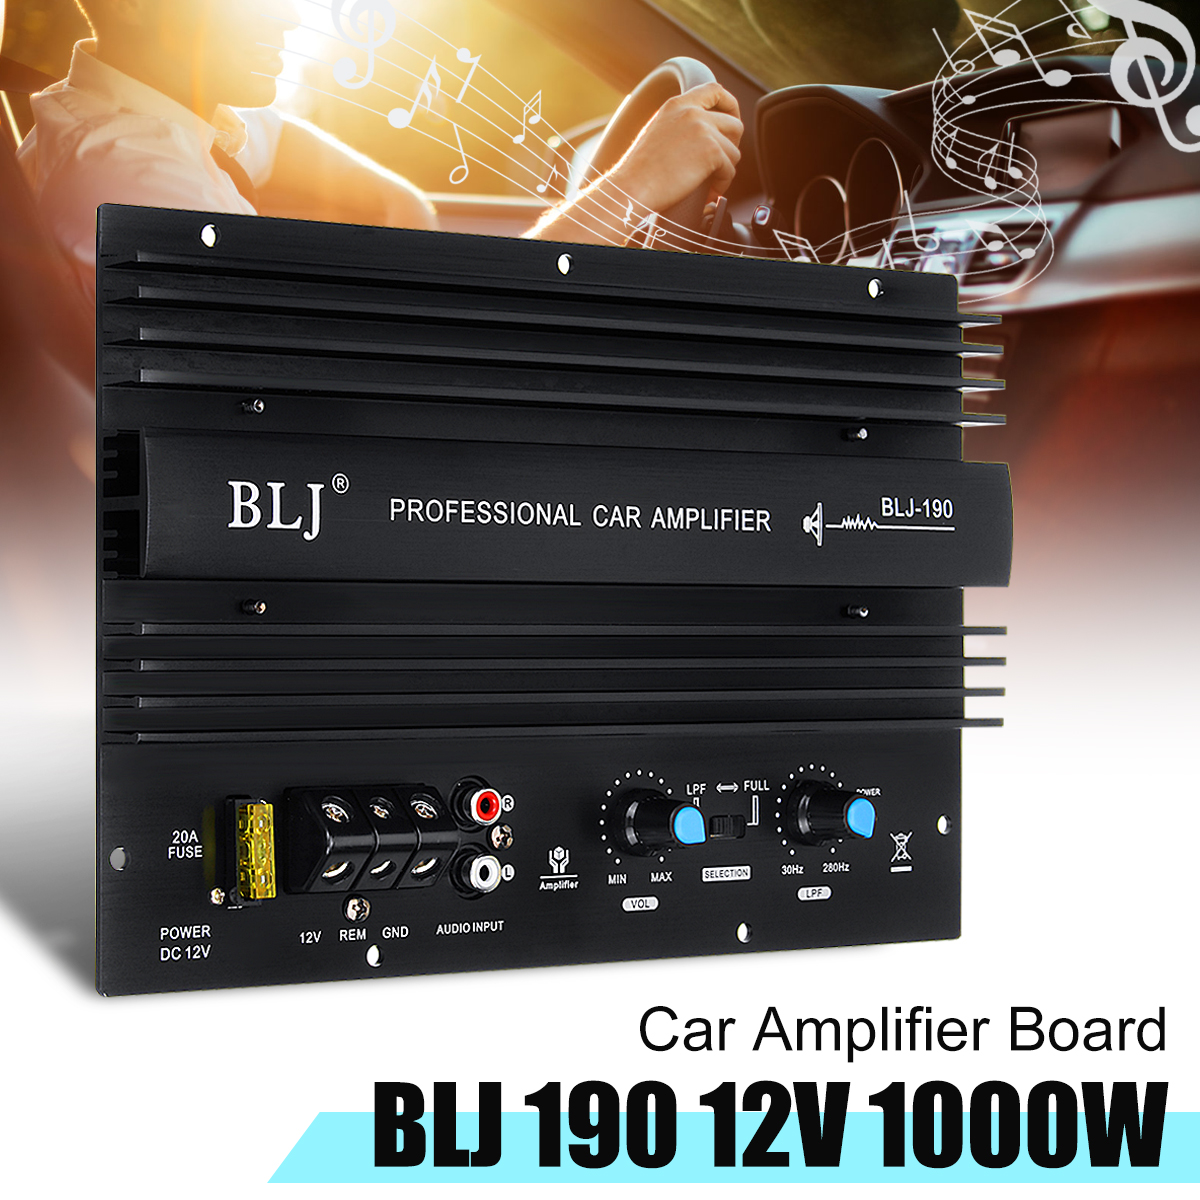 12V 1000W 105dBA Mono Car Audio High Power Amplifier Amp Board Powerful Bass Subwoofer Power Connection Electric Components